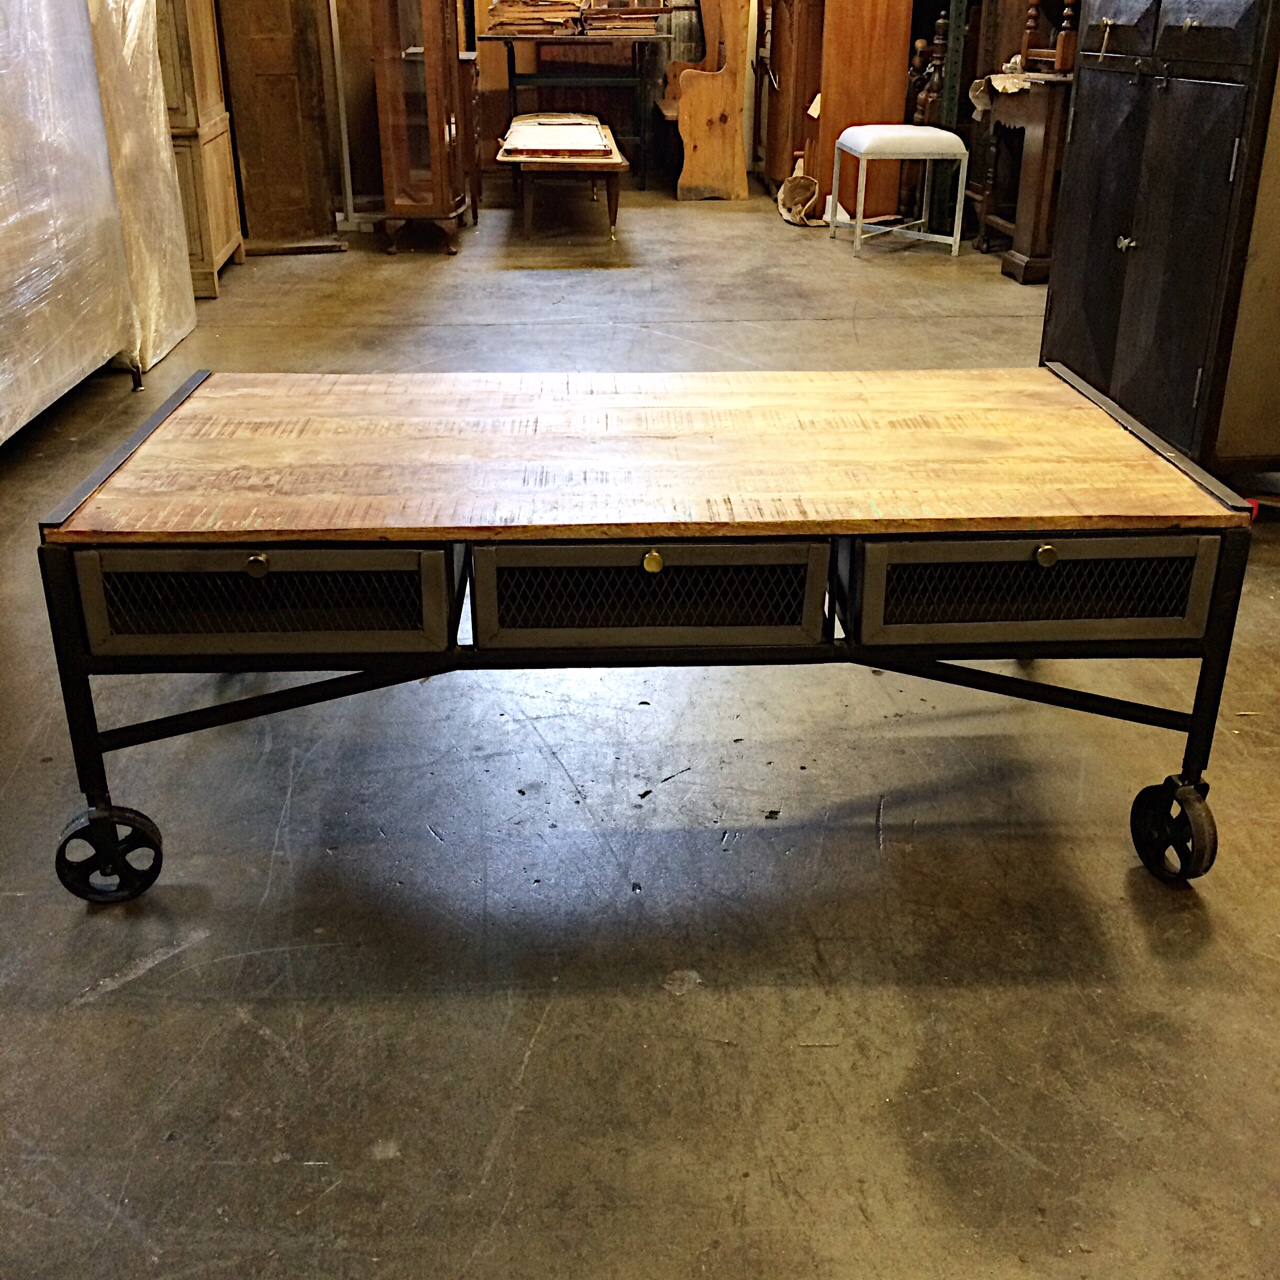 Indore Coffee Table With 6 Drawers: Industrial Iron And Wood Coffee Table With Drawers